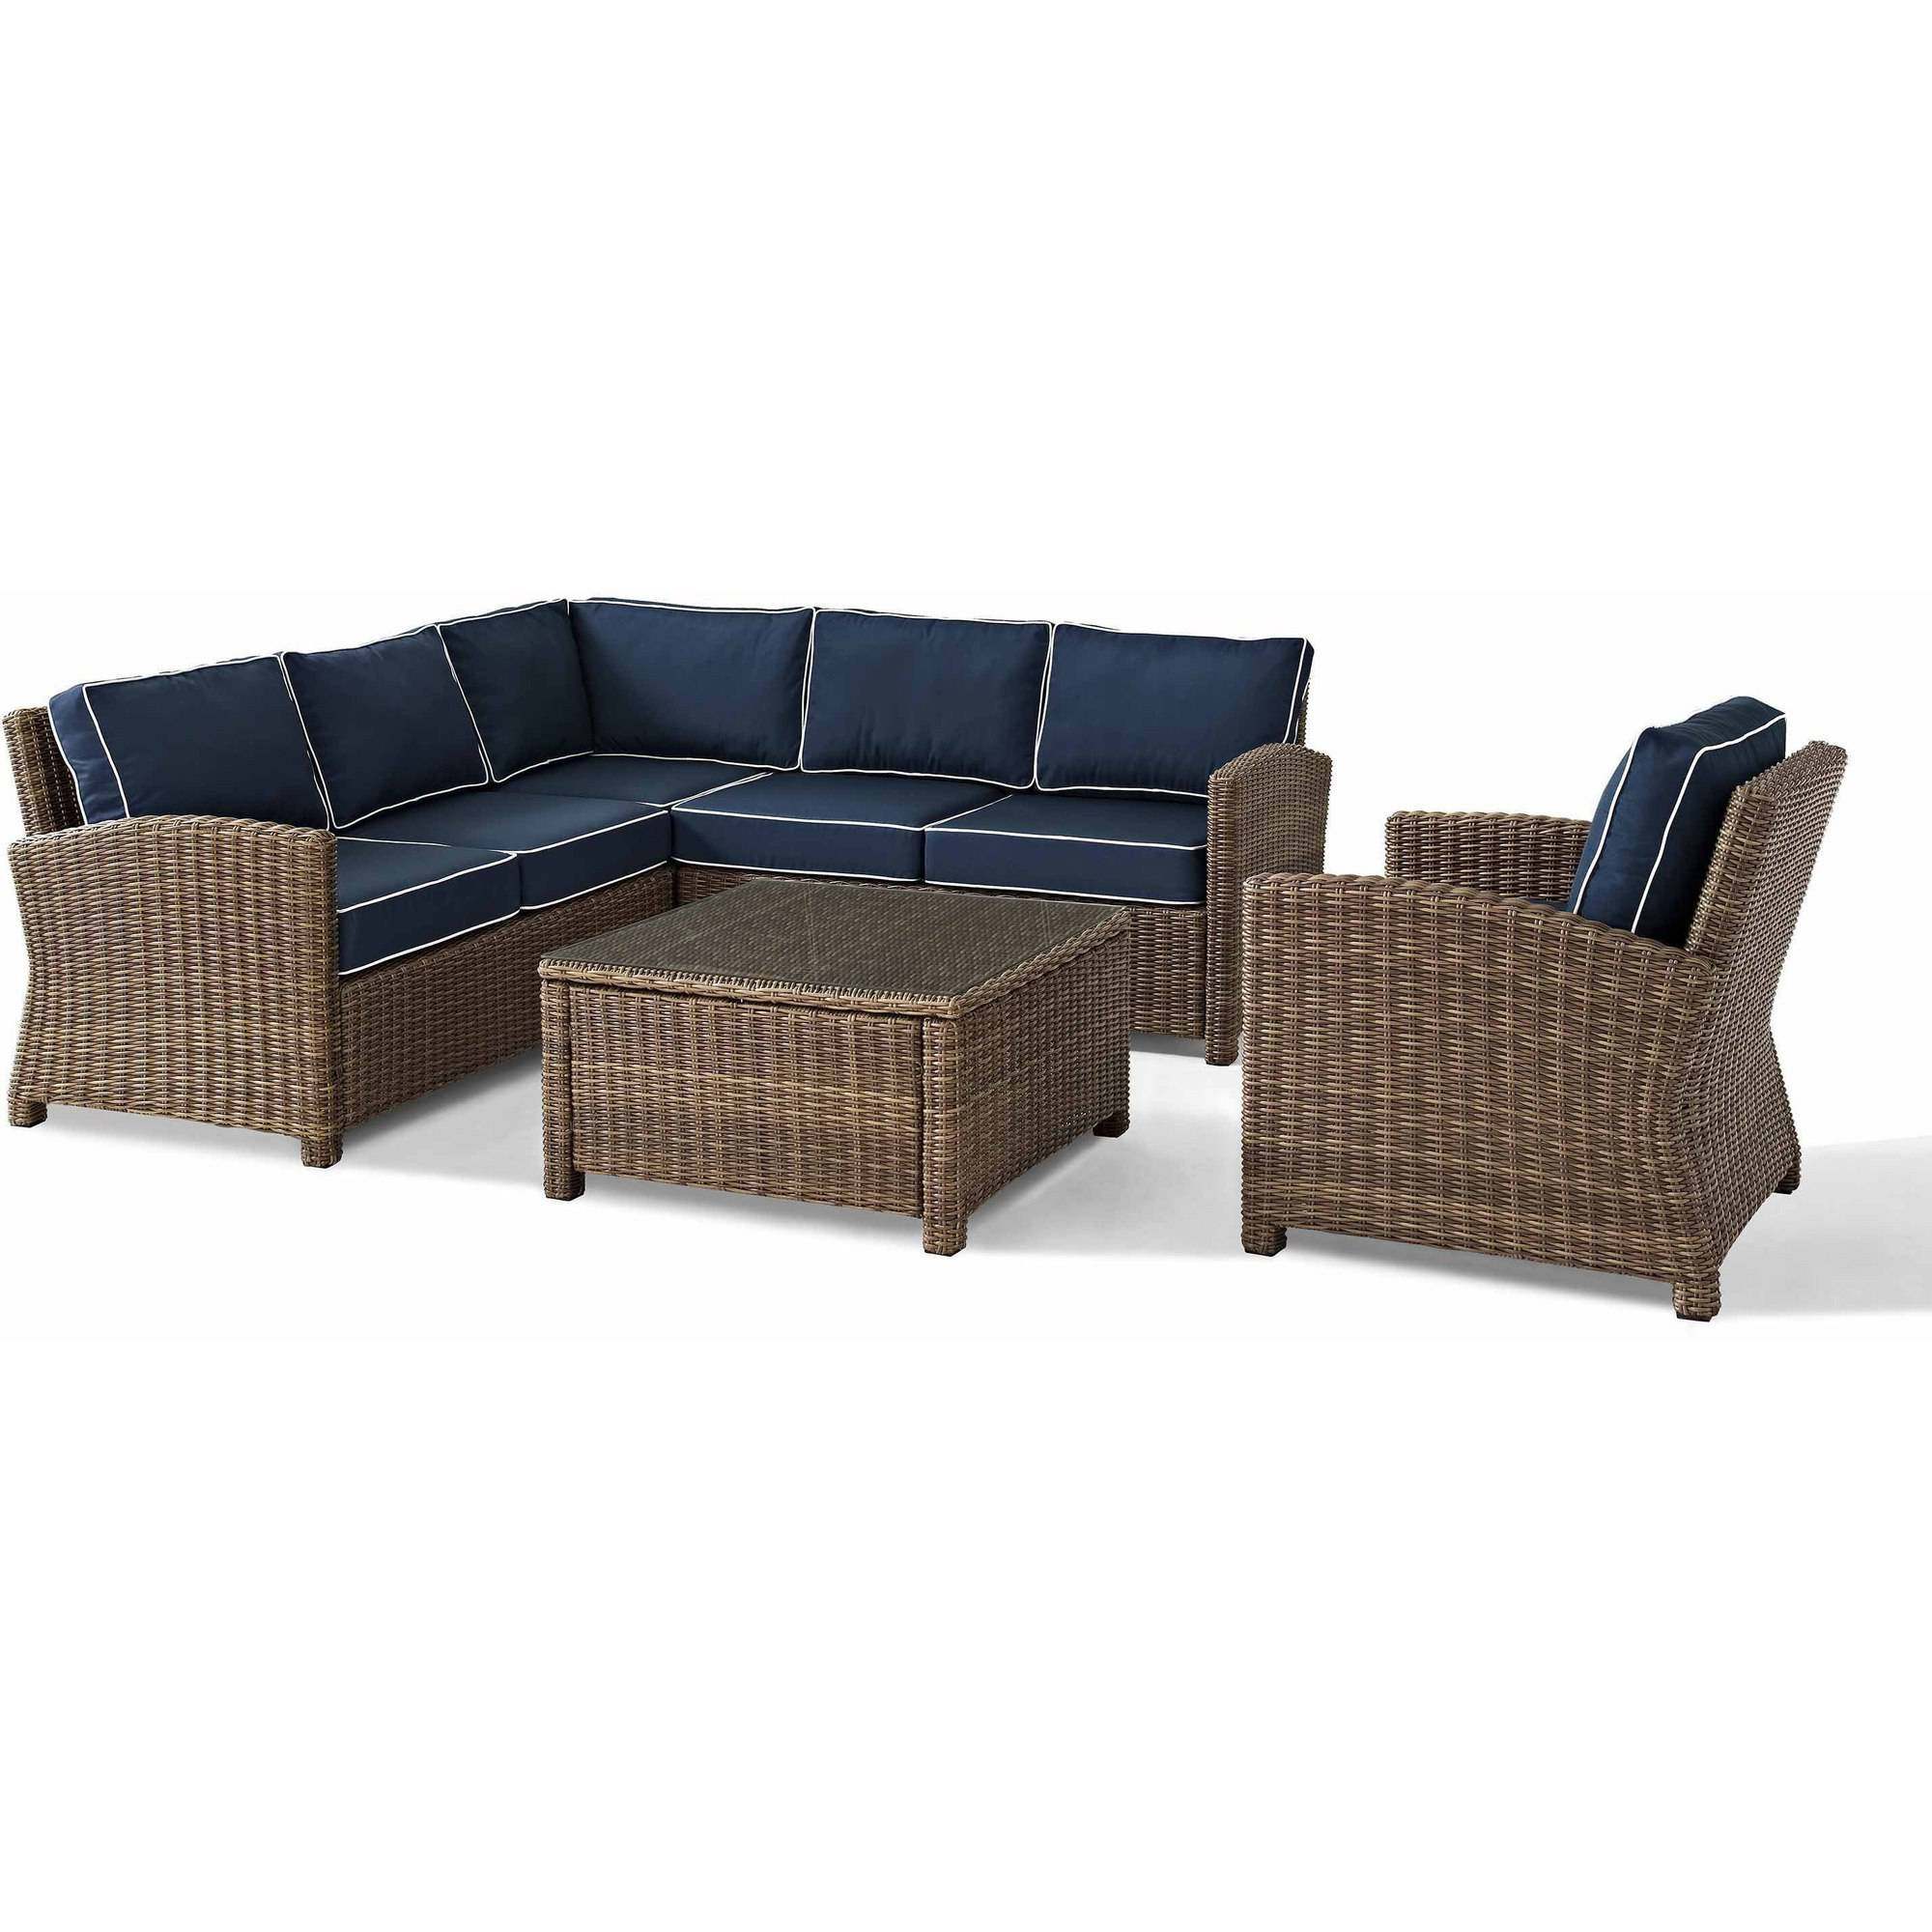 Crosley Furniture Bradenton 5 Piece Outdoor Wicker Seating Set With Navy  Cushions   Right Corner Loveseat, Left Corner Loveseat, Corner Chair, Arm  Chair, ...